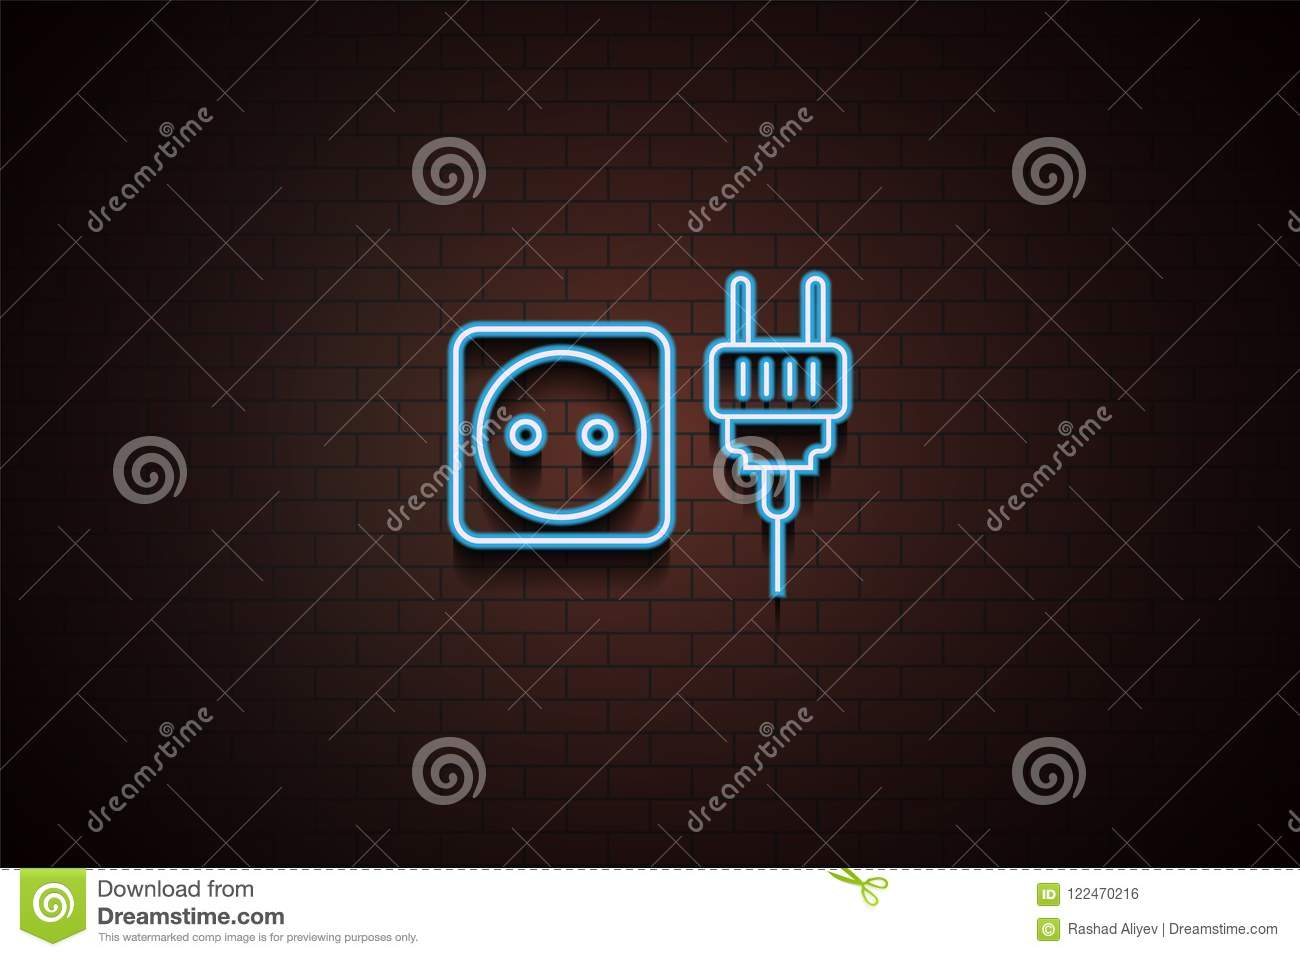 Ux Plug Socket And Plug Icon In Neon Style One Of Appliances Collection